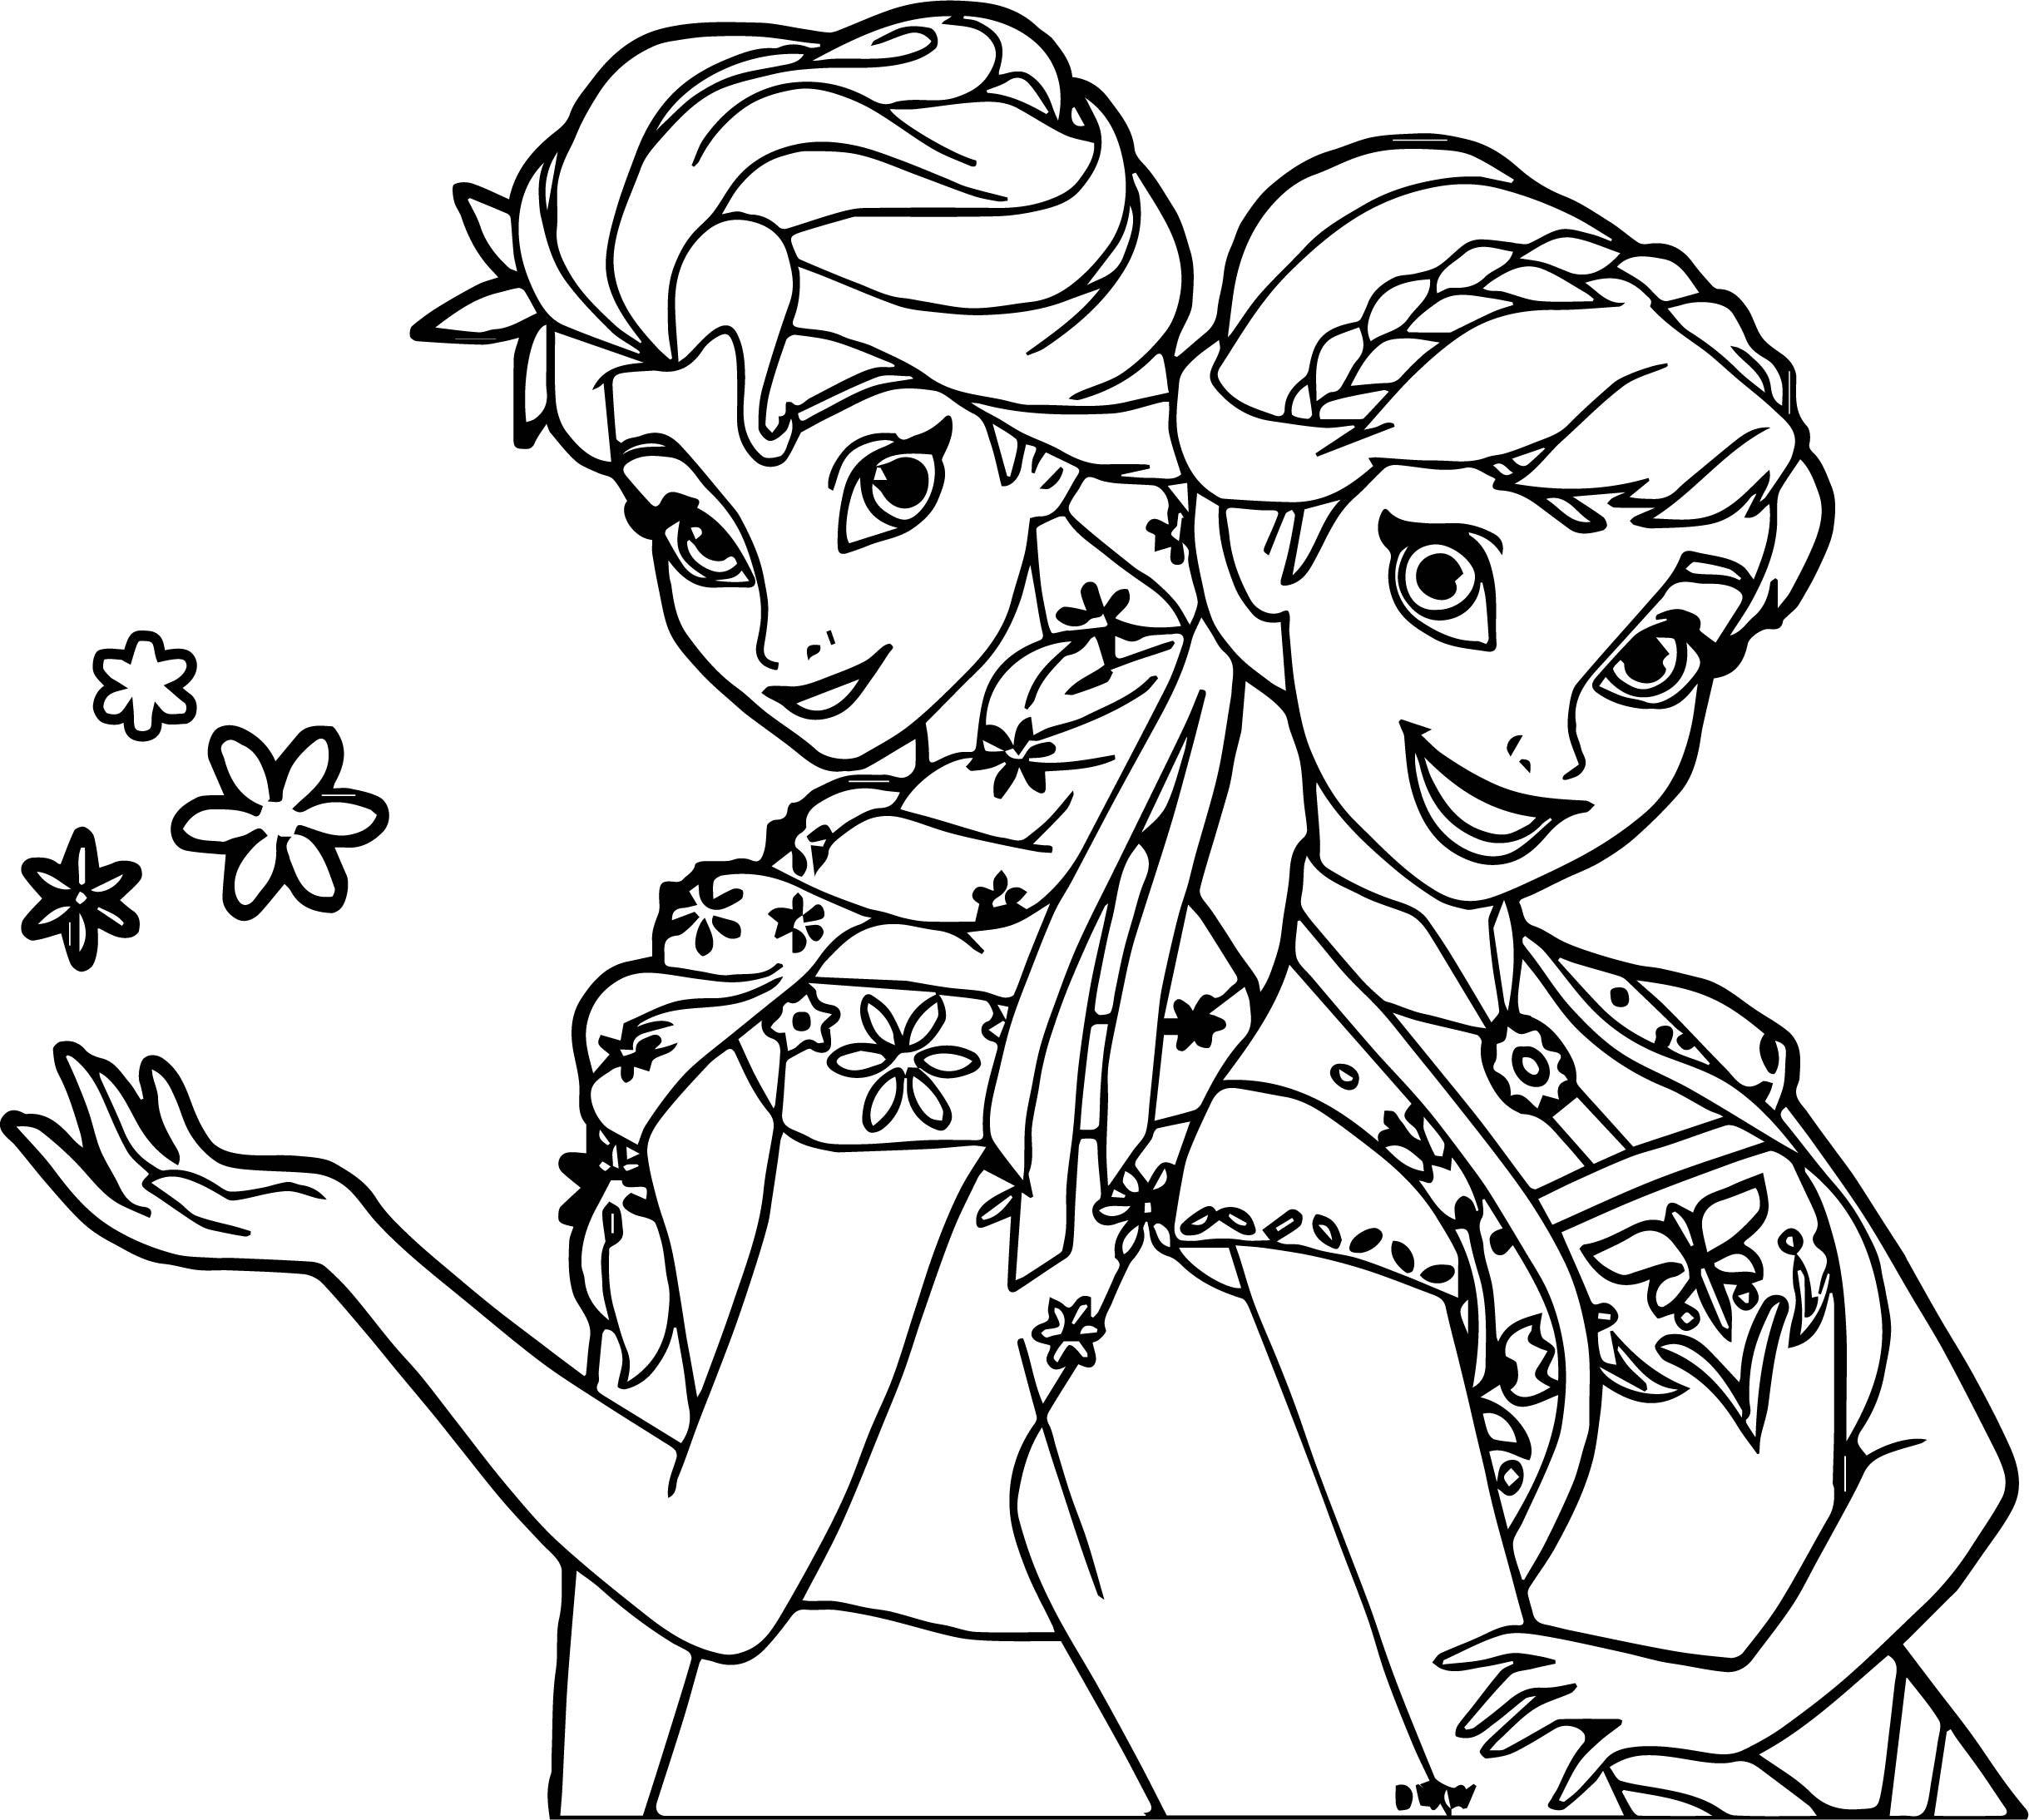 a coloring picture of frozen frozen halloween coloring page mommy in sports frozen a picture of coloring